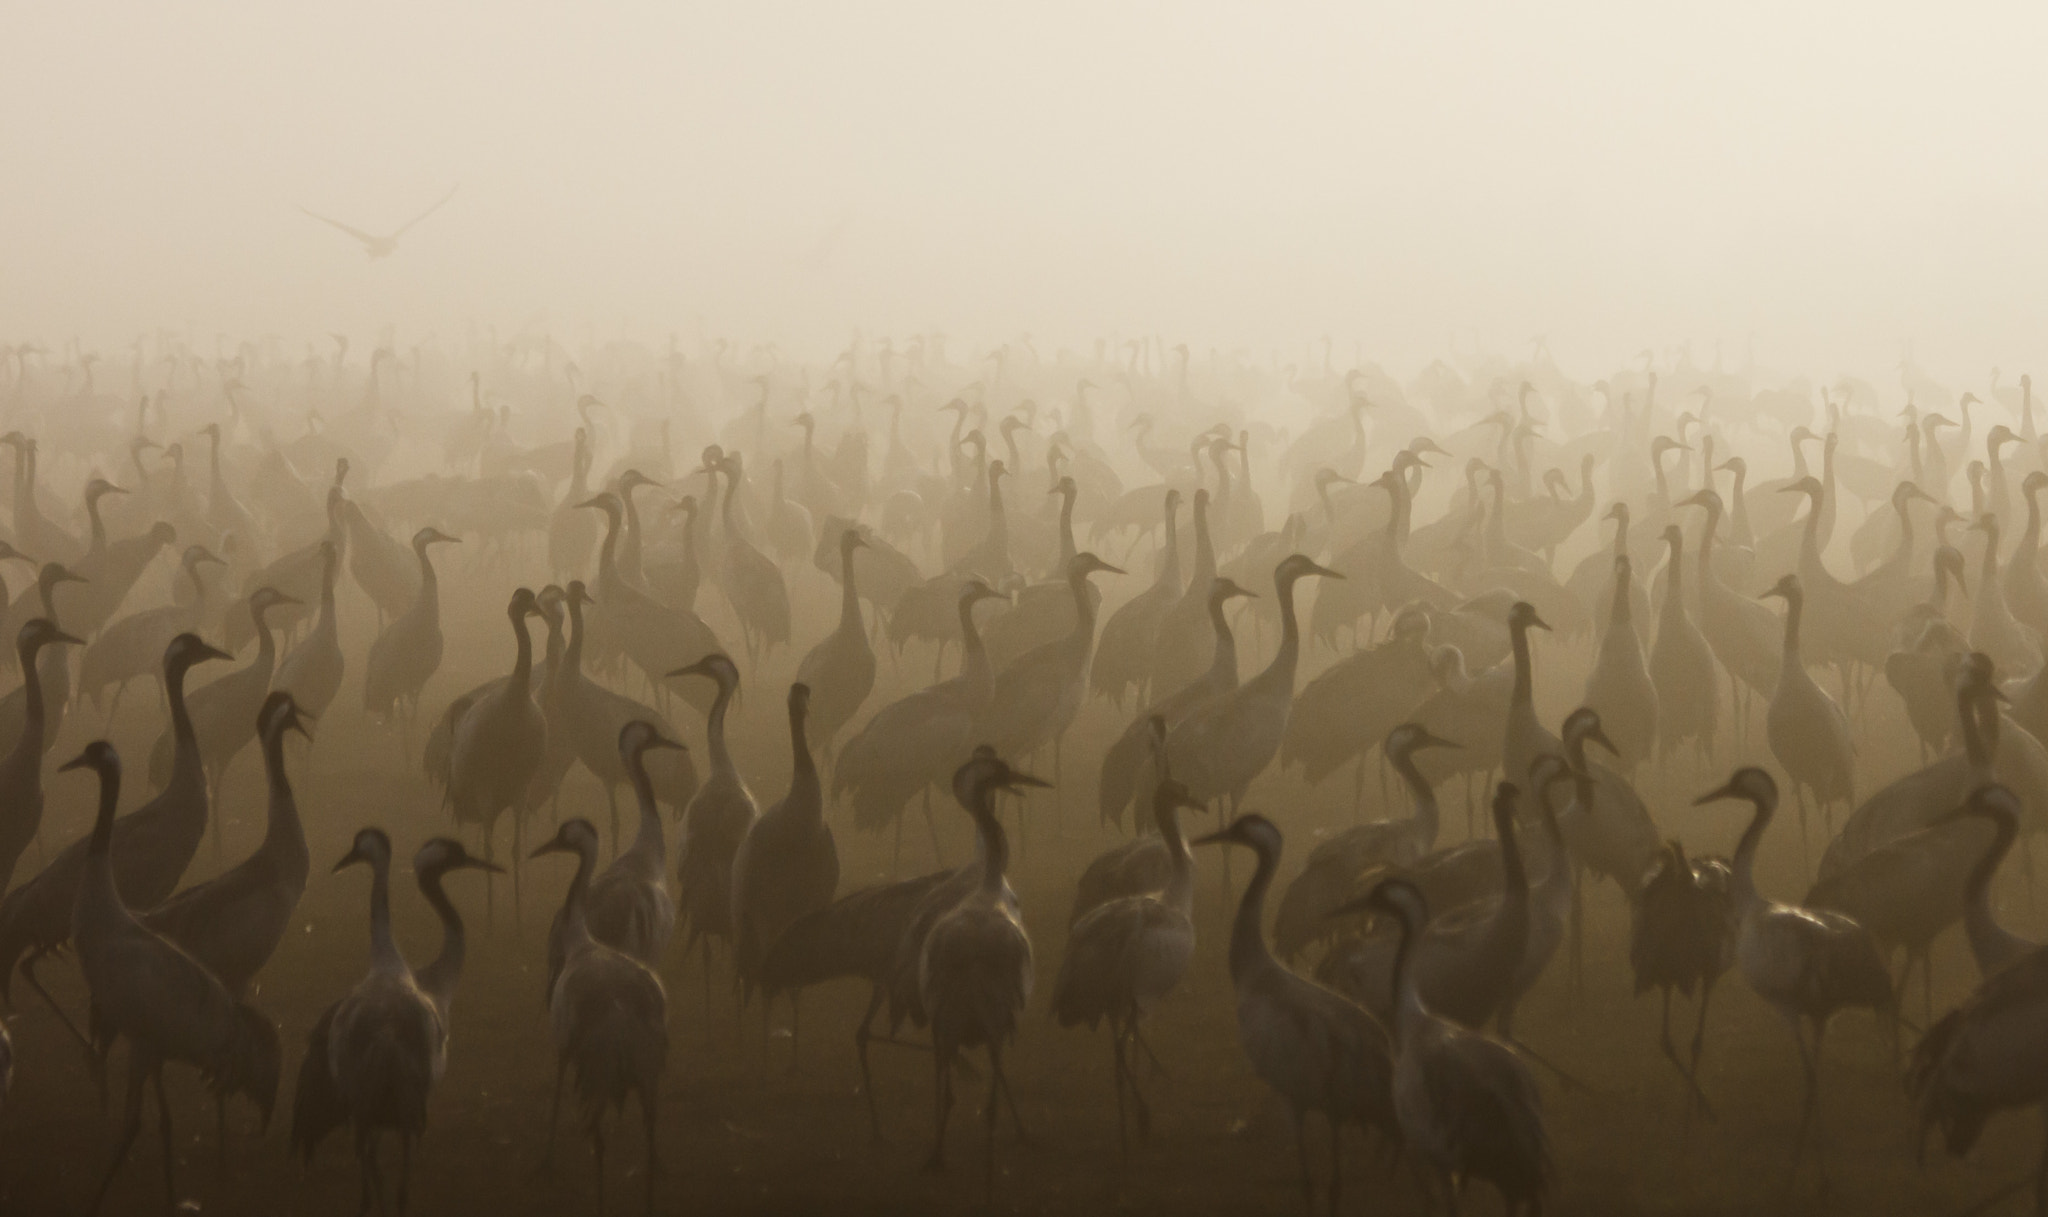 Photograph Cranes in the fog by Gilad Hazan on 500px